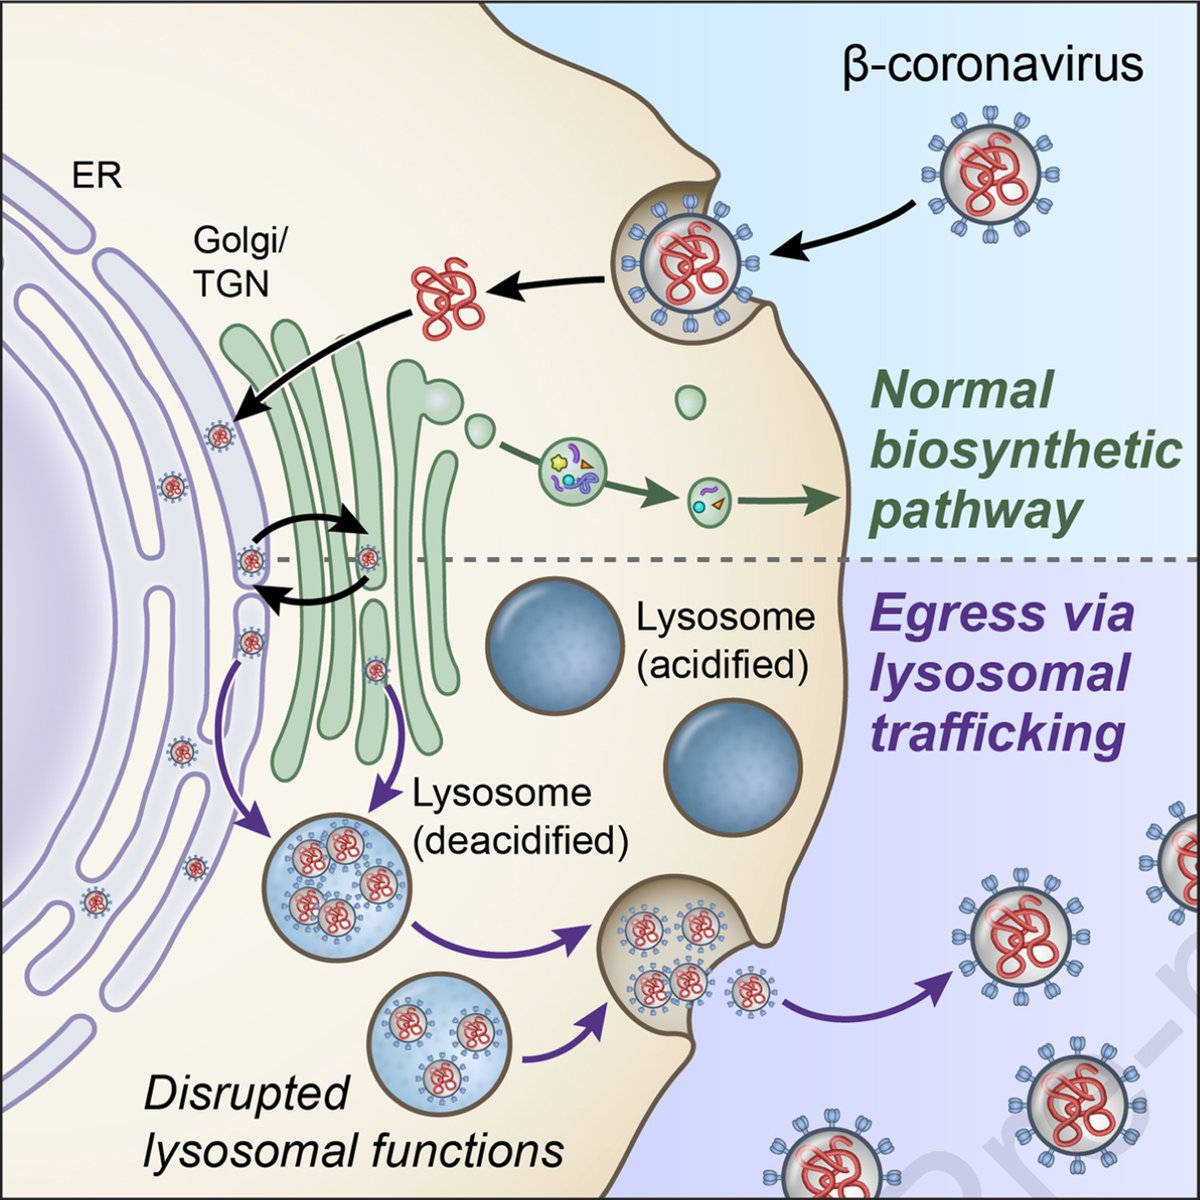 """Add to the """"then what? Eggression via lysosomes (β-coronaviruses, which is unconventional) https://t.co/wDkT3Zj80n @CellCellPress https://t.co/CRWqbPnsHg"""